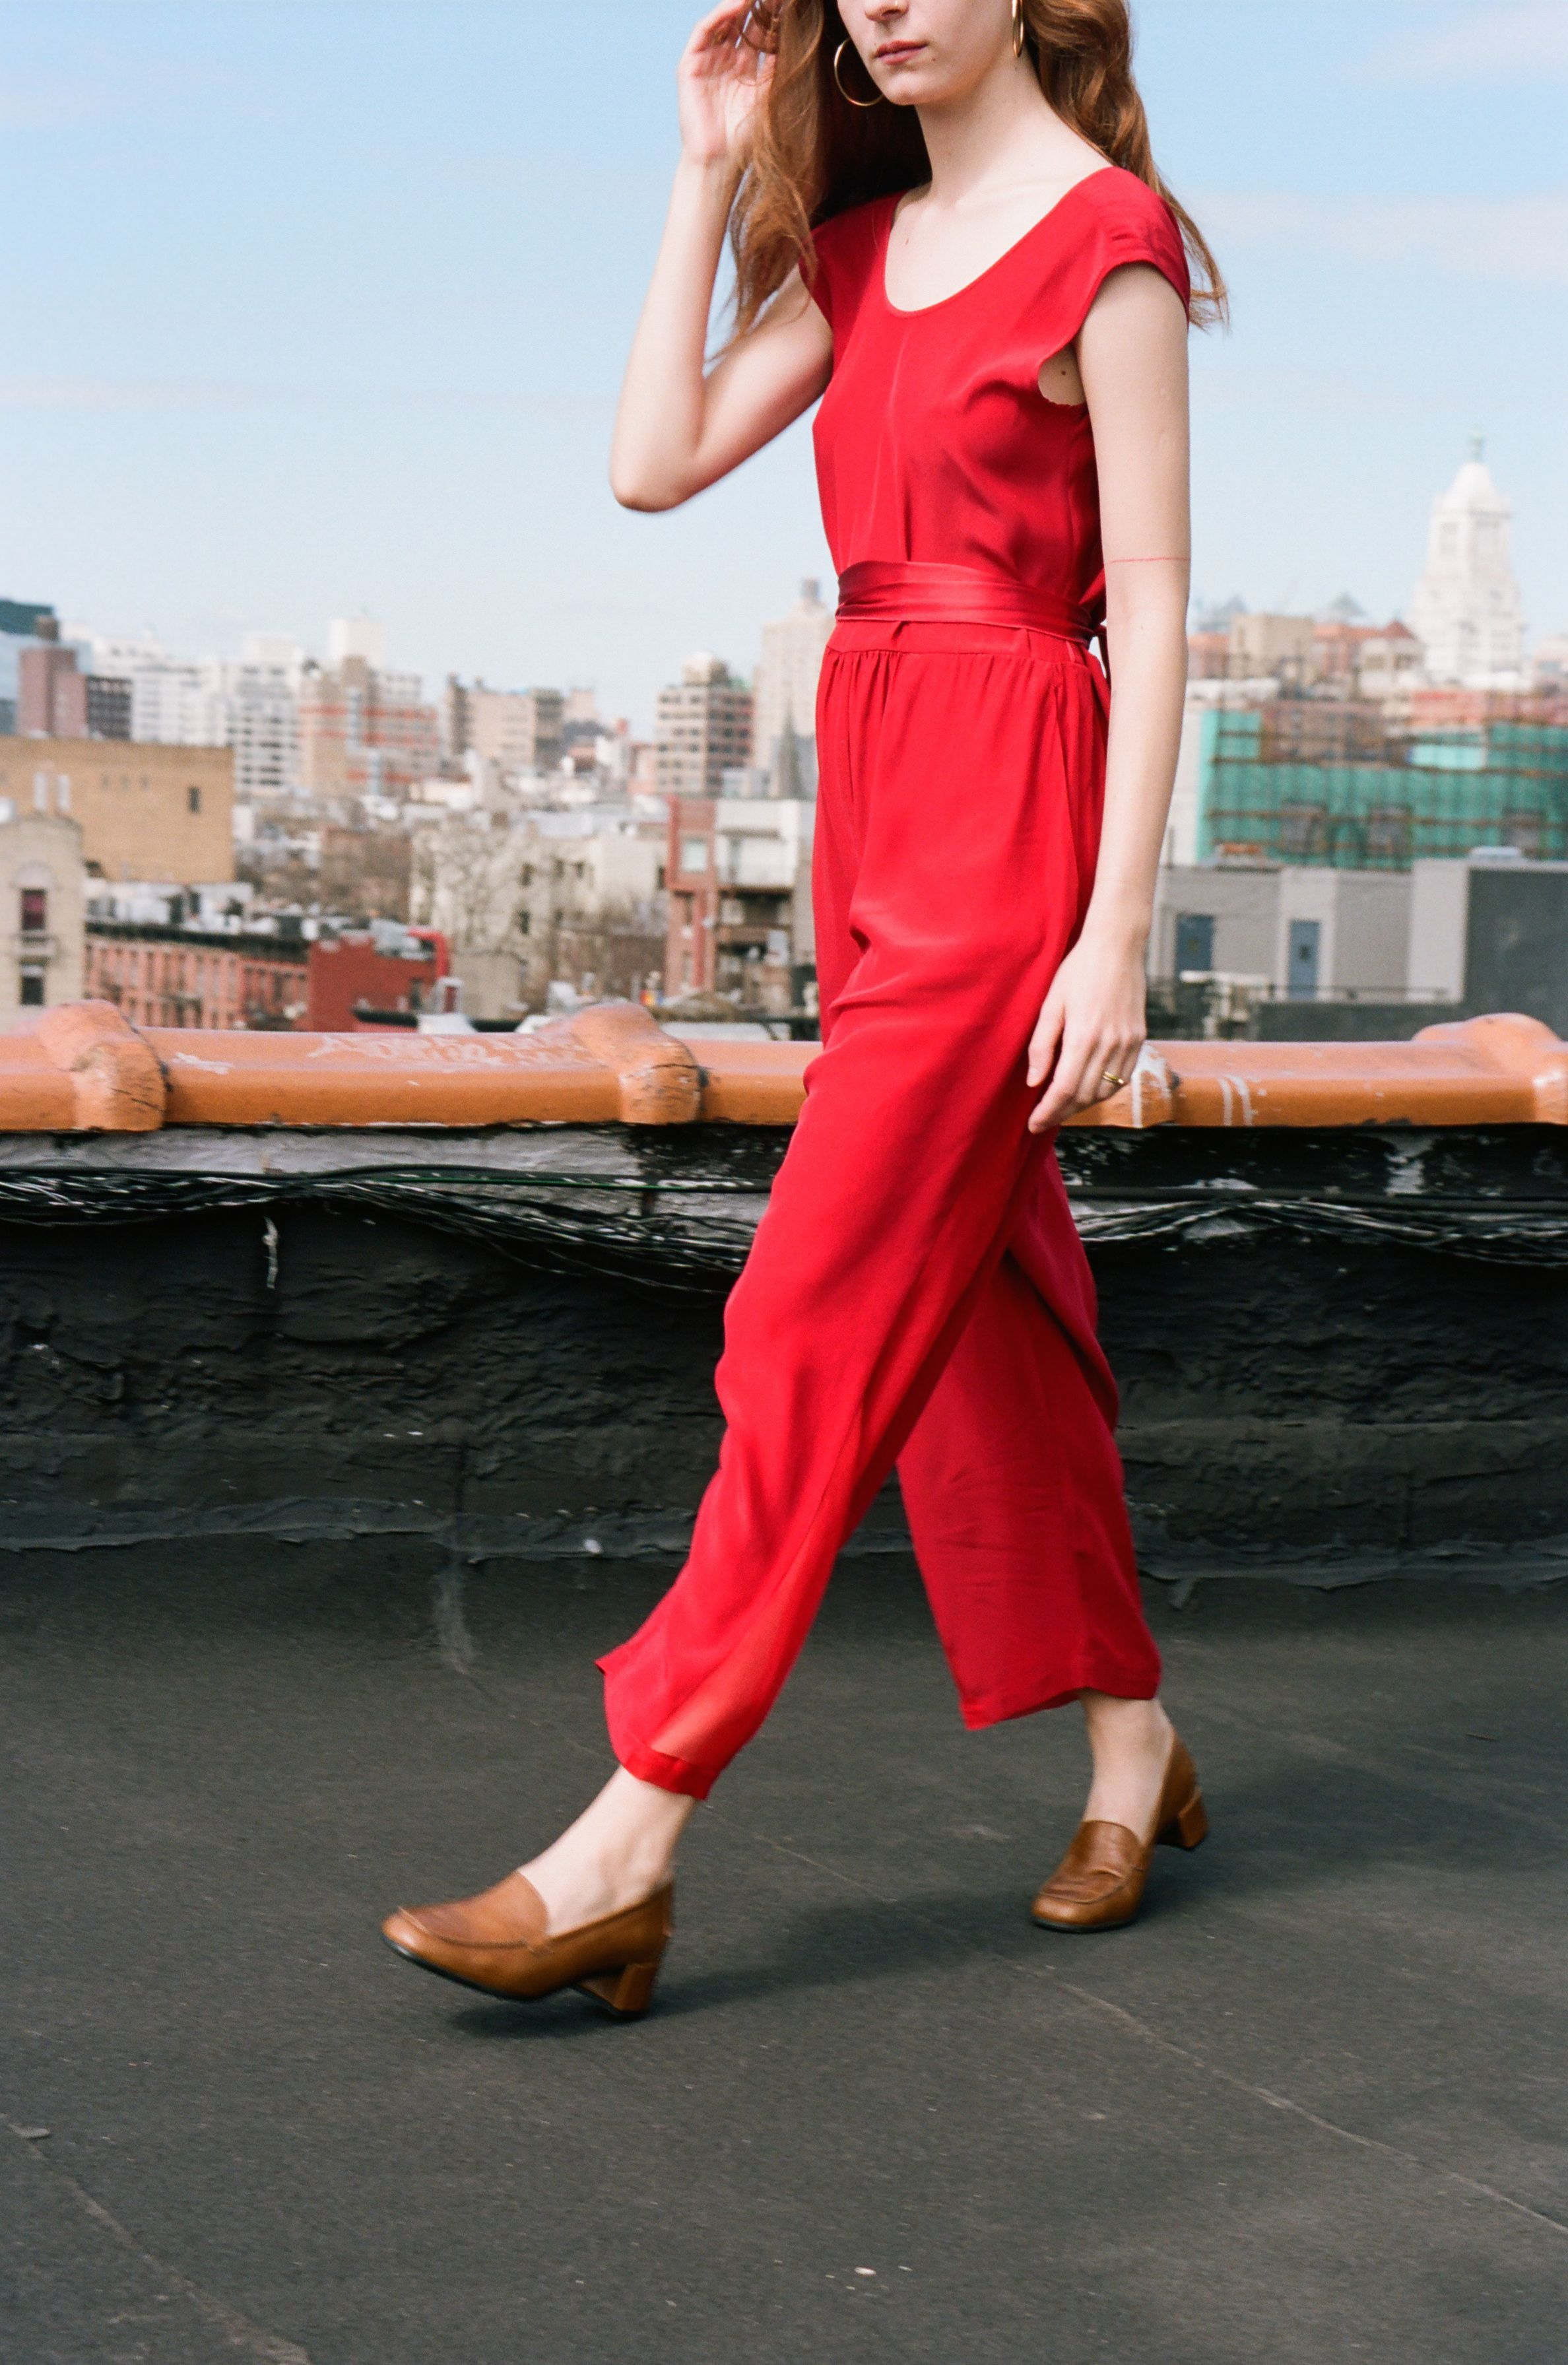 4e966bce3a0 Zaga (@grau) wearing our Russian Red Judo Jumpsuit. Pic by Ana Kras ~ Shoes  by About Arianne